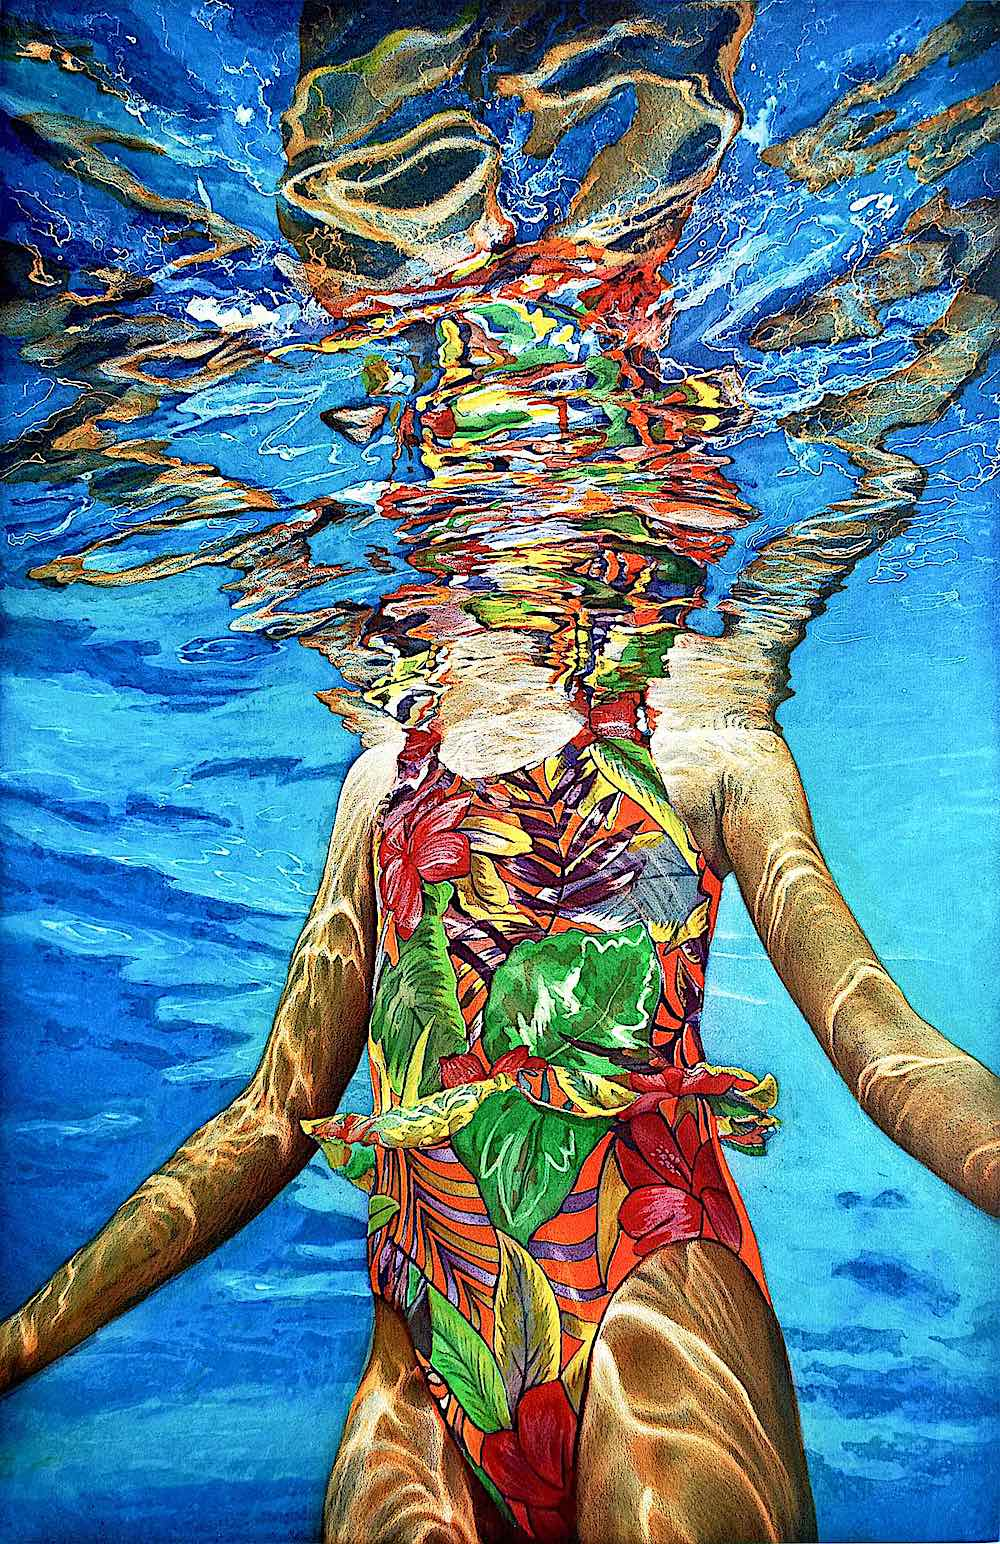 an Art Werger painting, underwater girl in a swimming pool